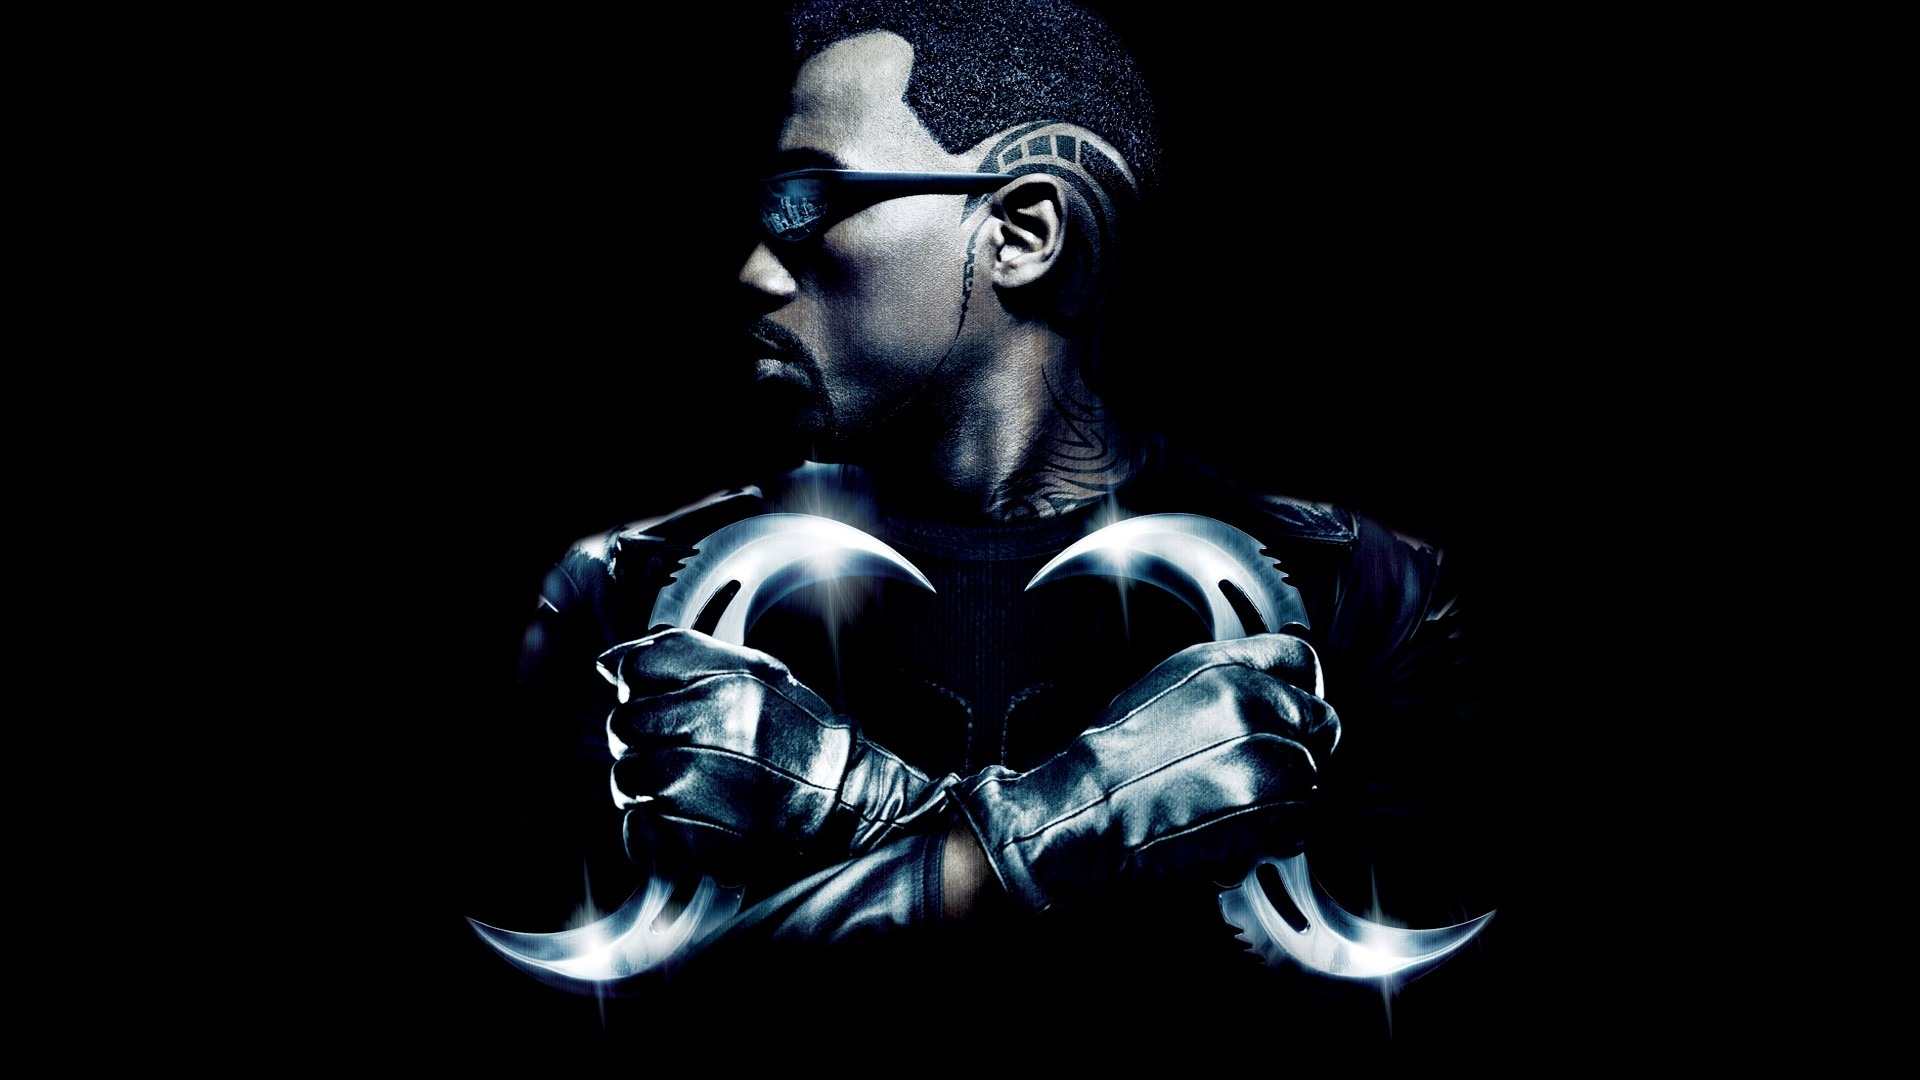 Wesley Snipes Blade Wallpaper